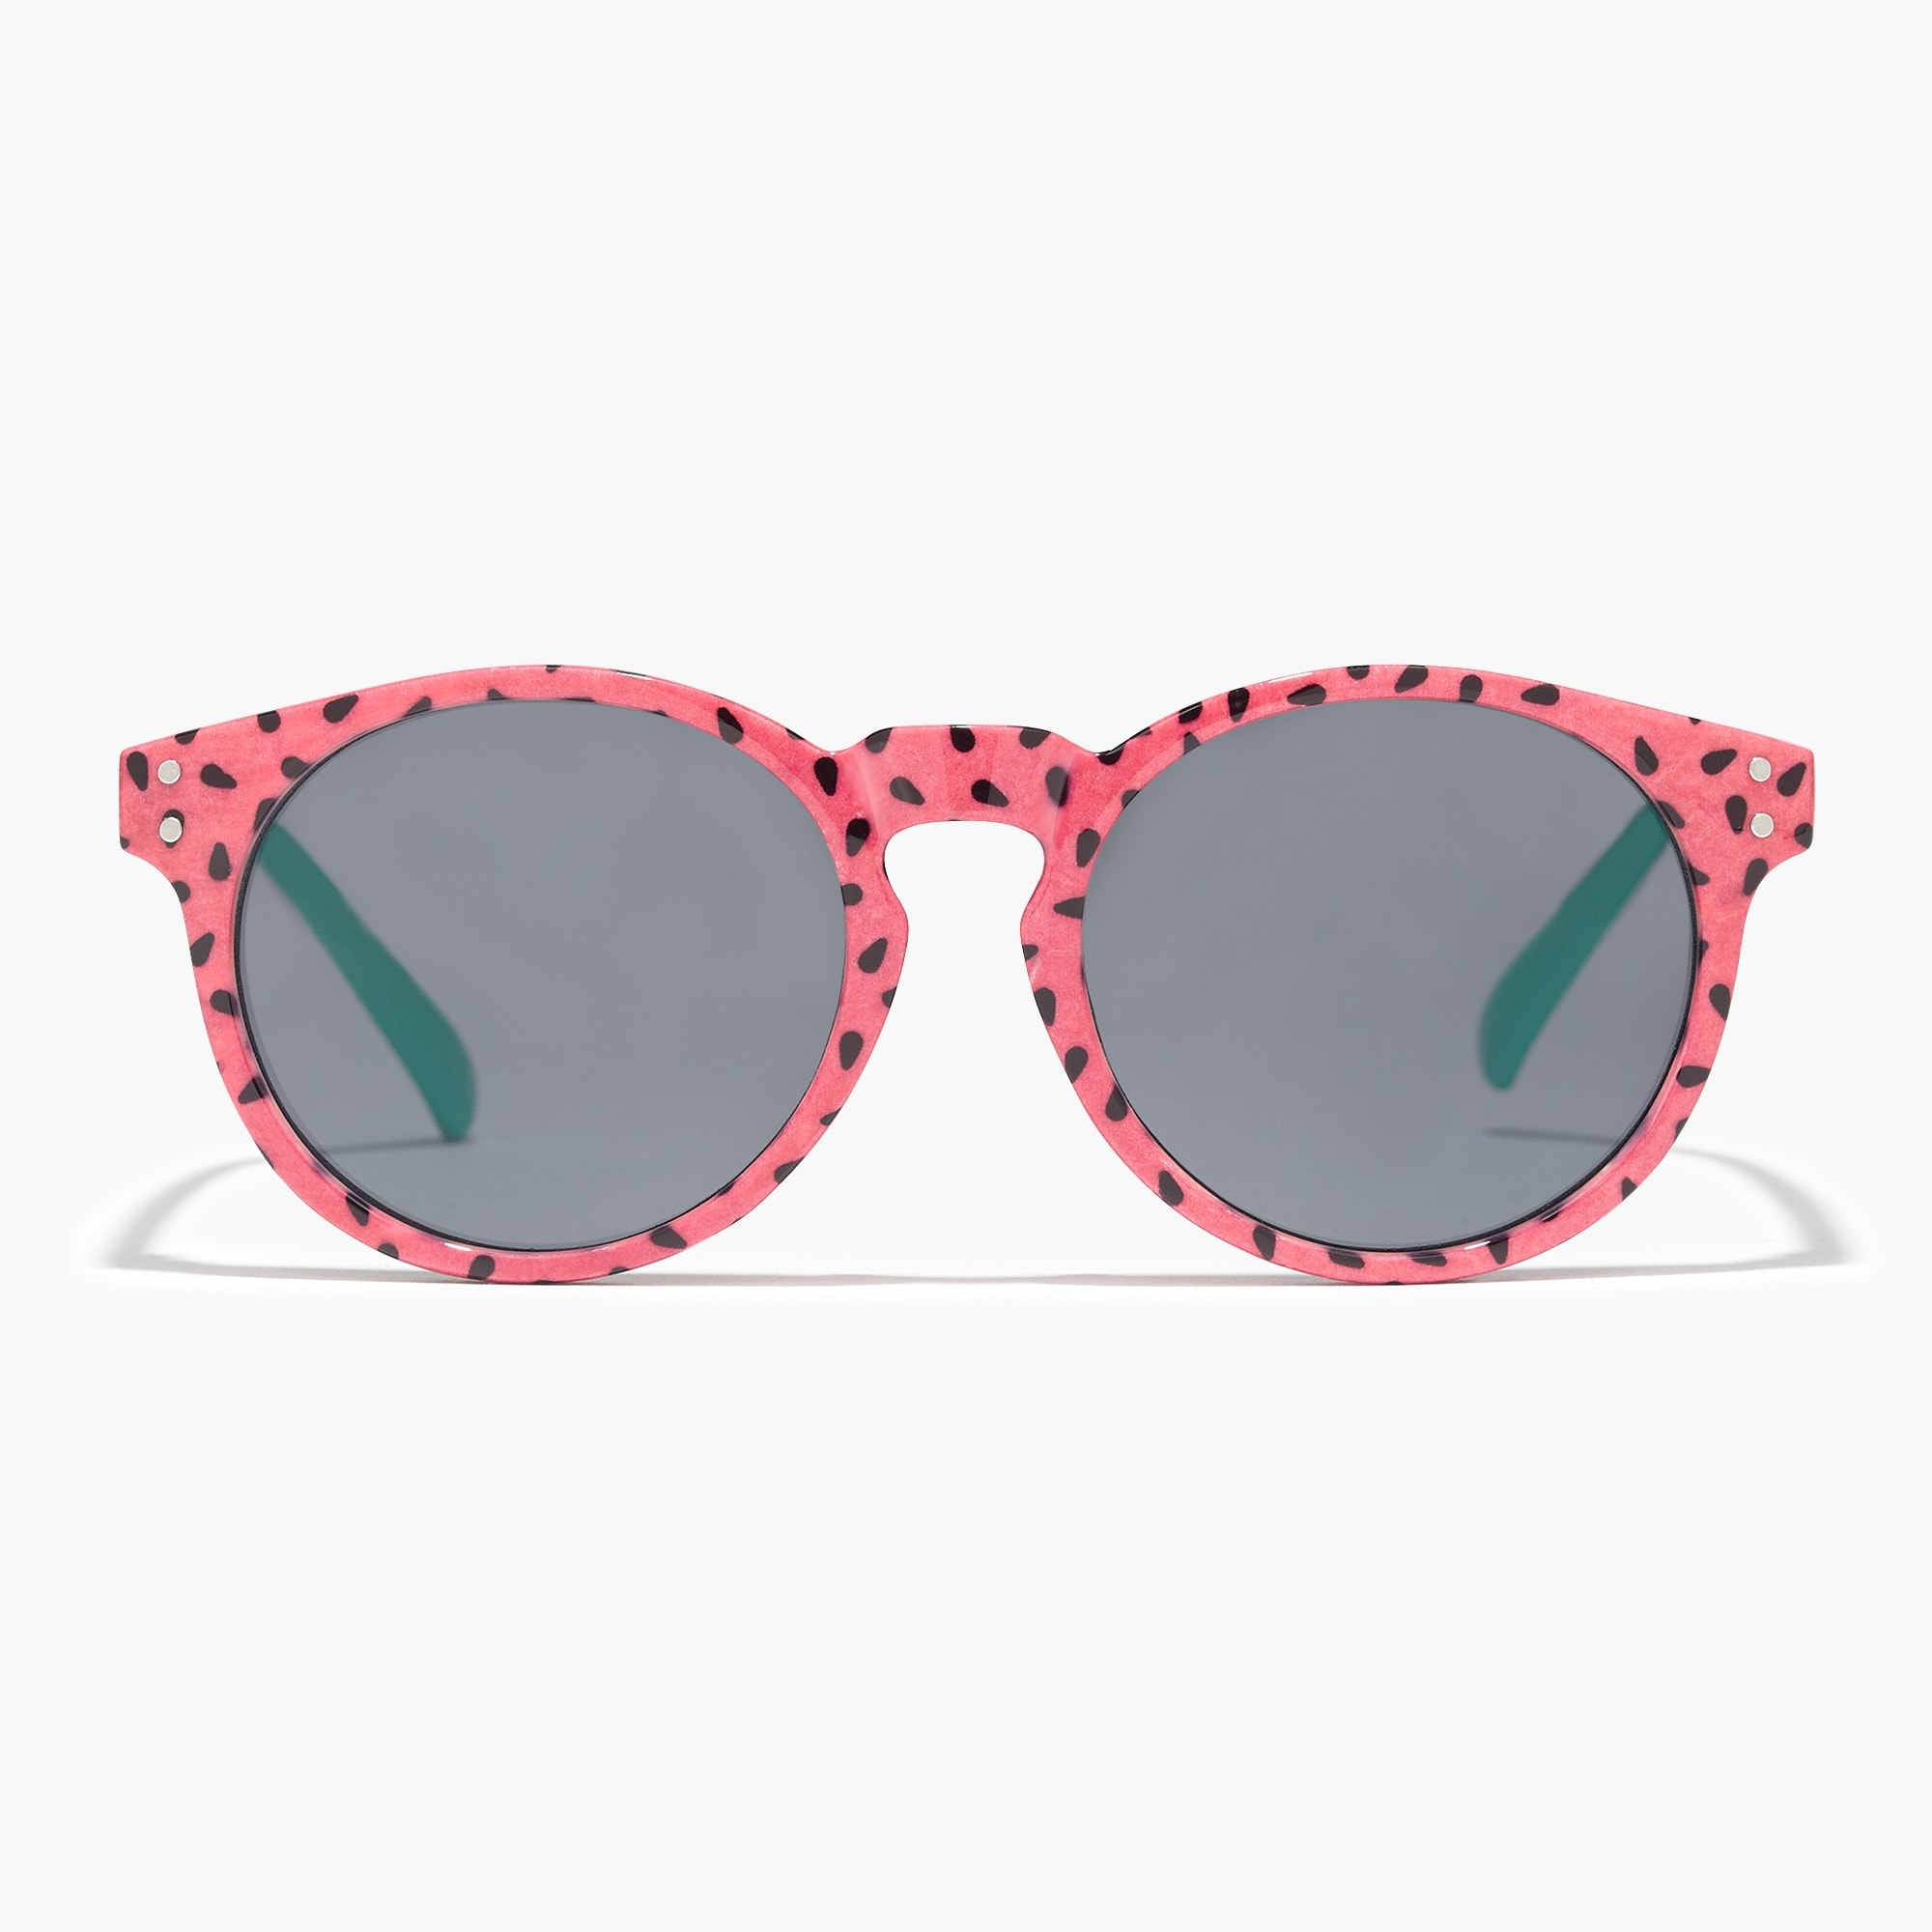 girls Girls' sunglasses in watermelon